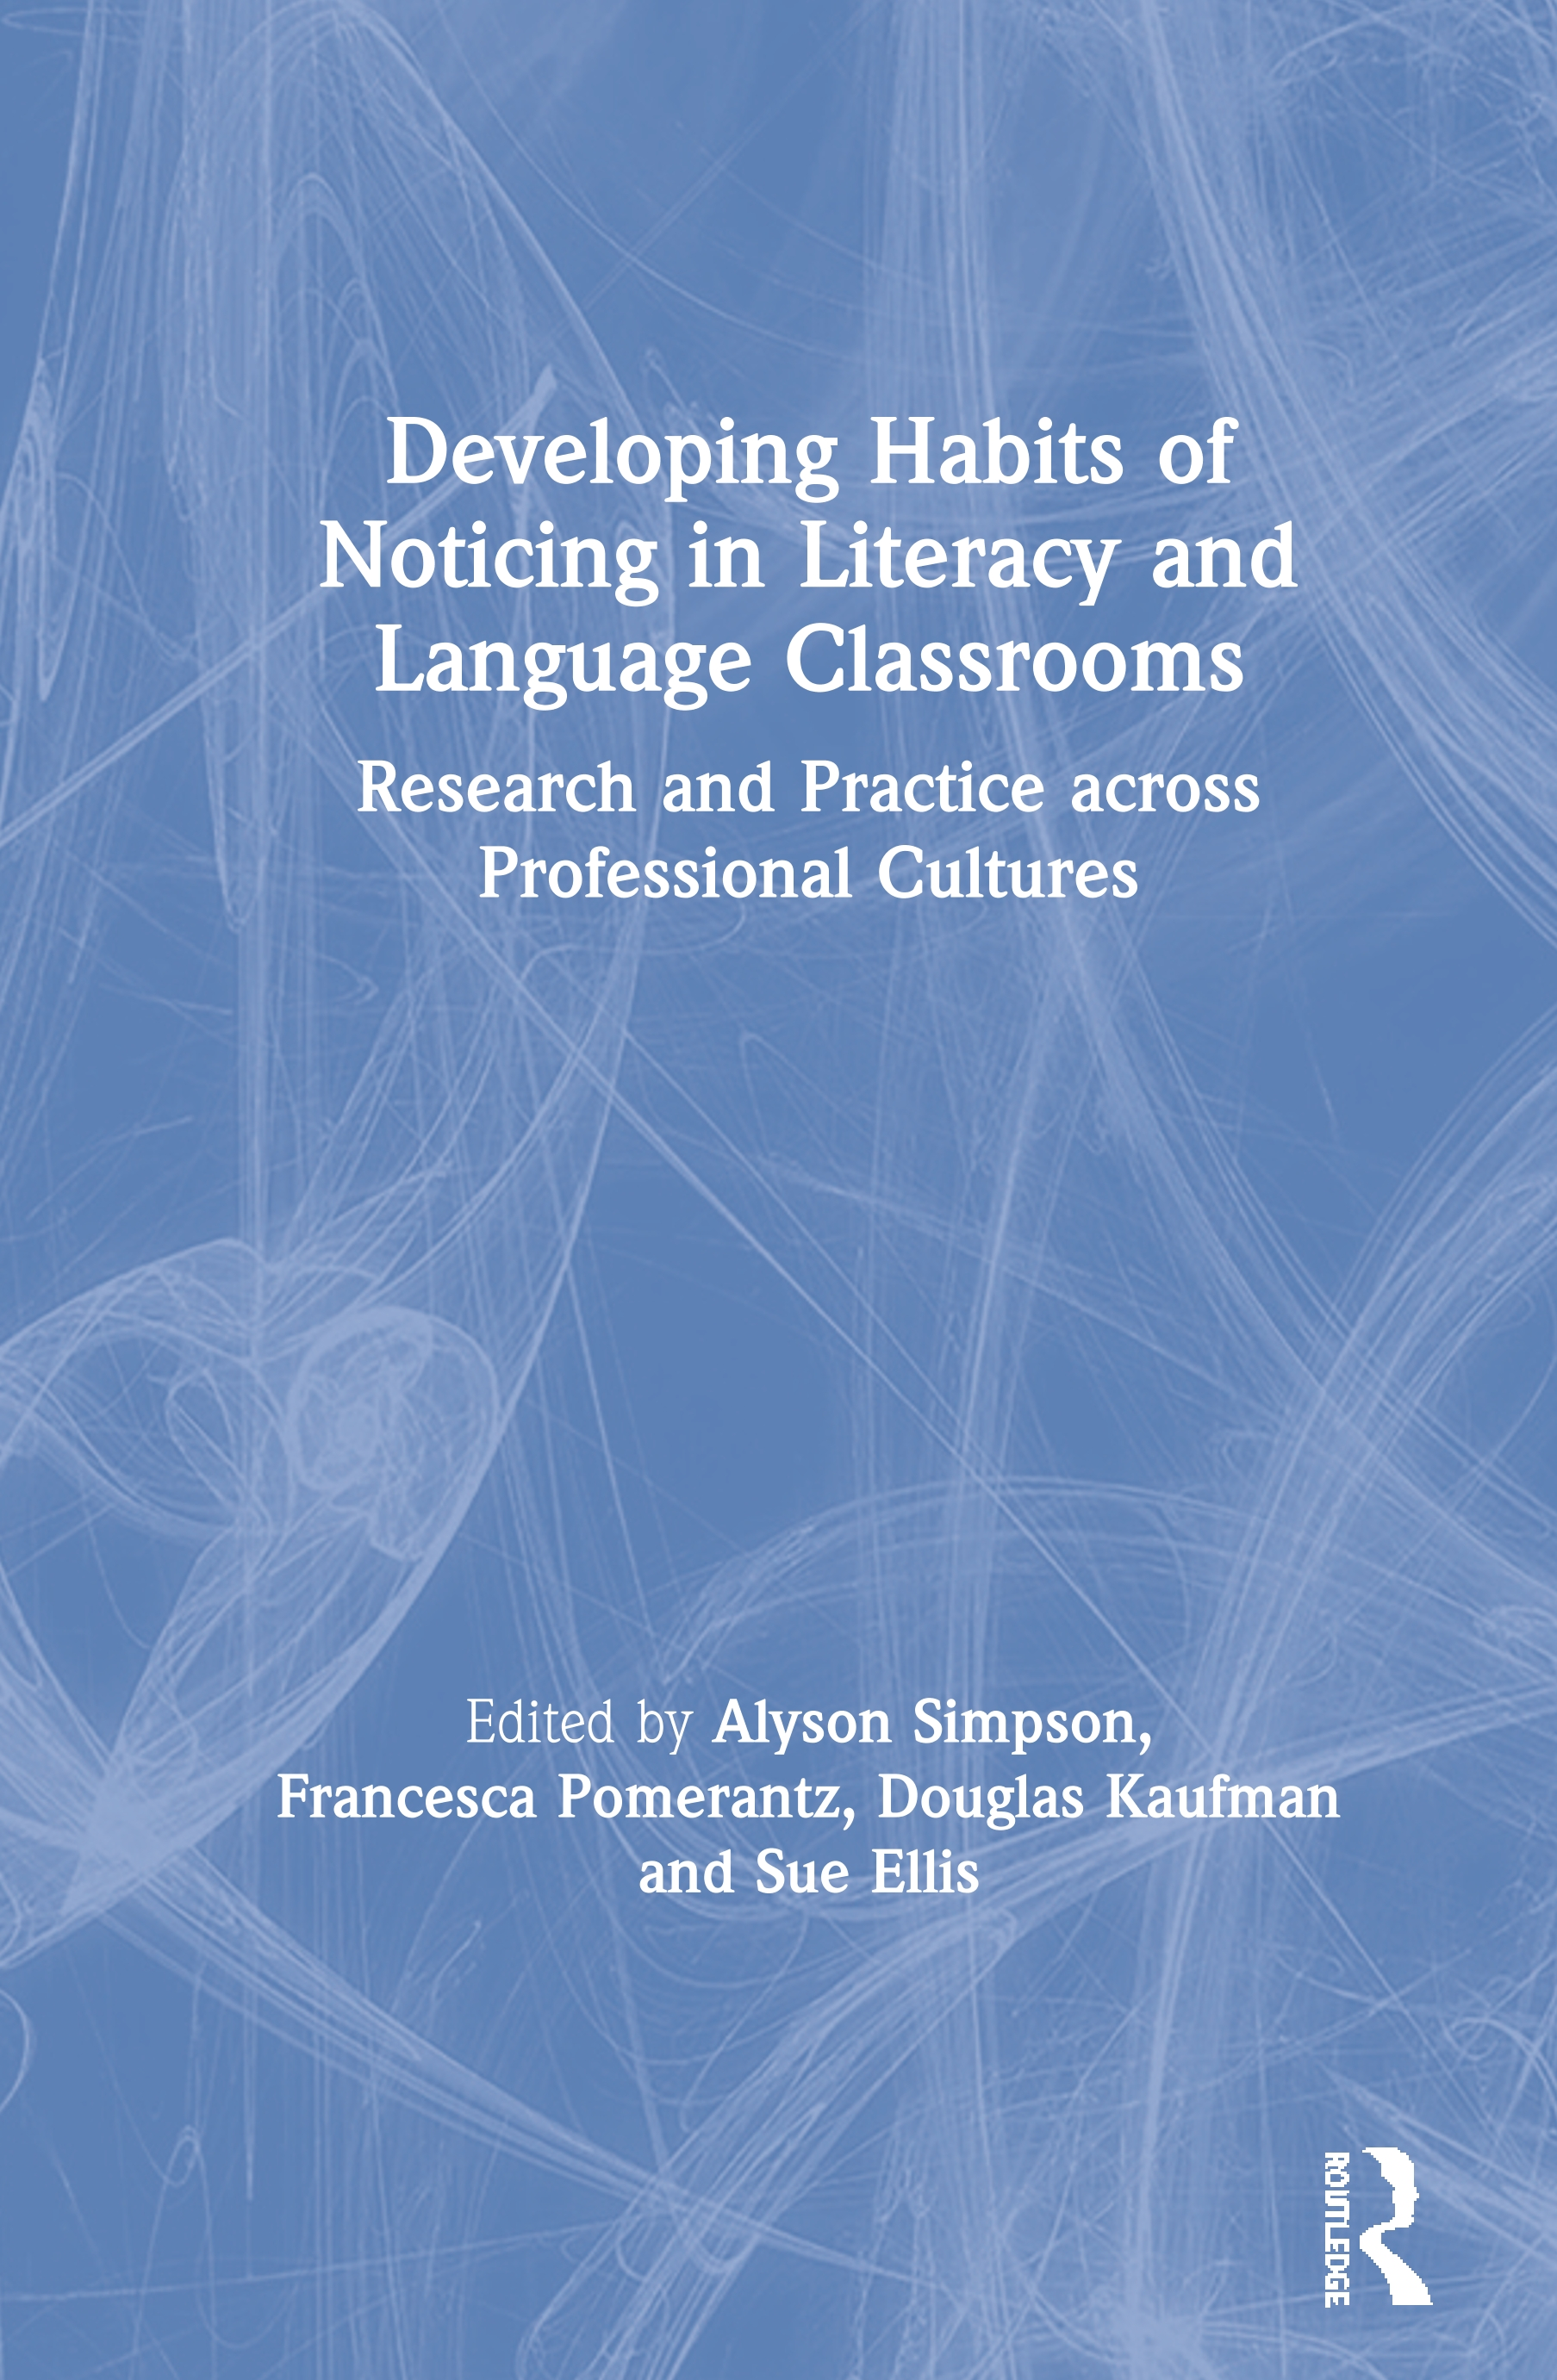 Developing Habits of Noticing in Literacy and Language Classrooms